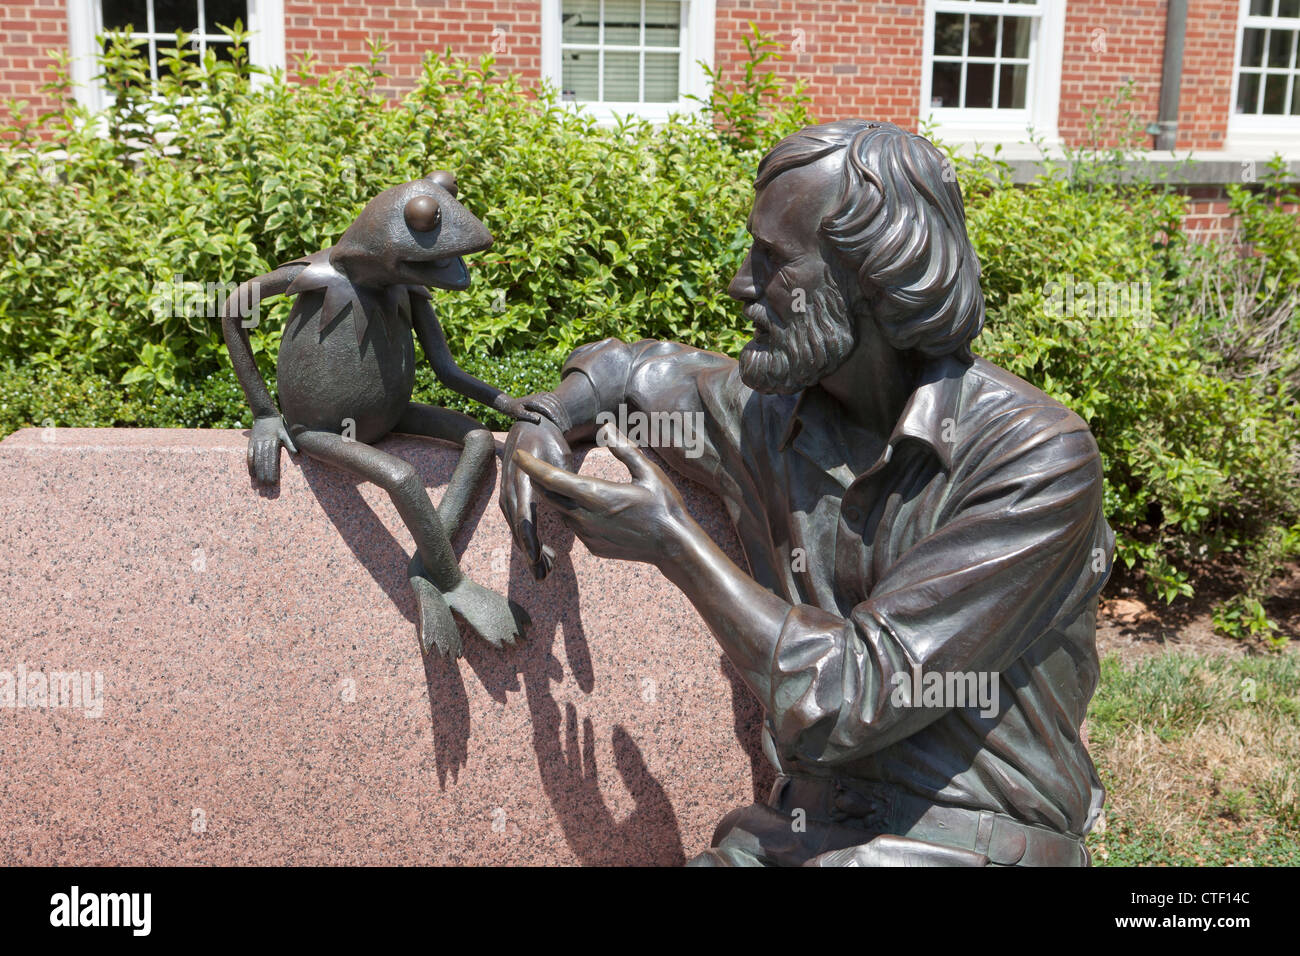 Jim Henson Memorial sculpture by Jay Hall Carpenter, 2003 - University of Maryland, College Park - Stock Image